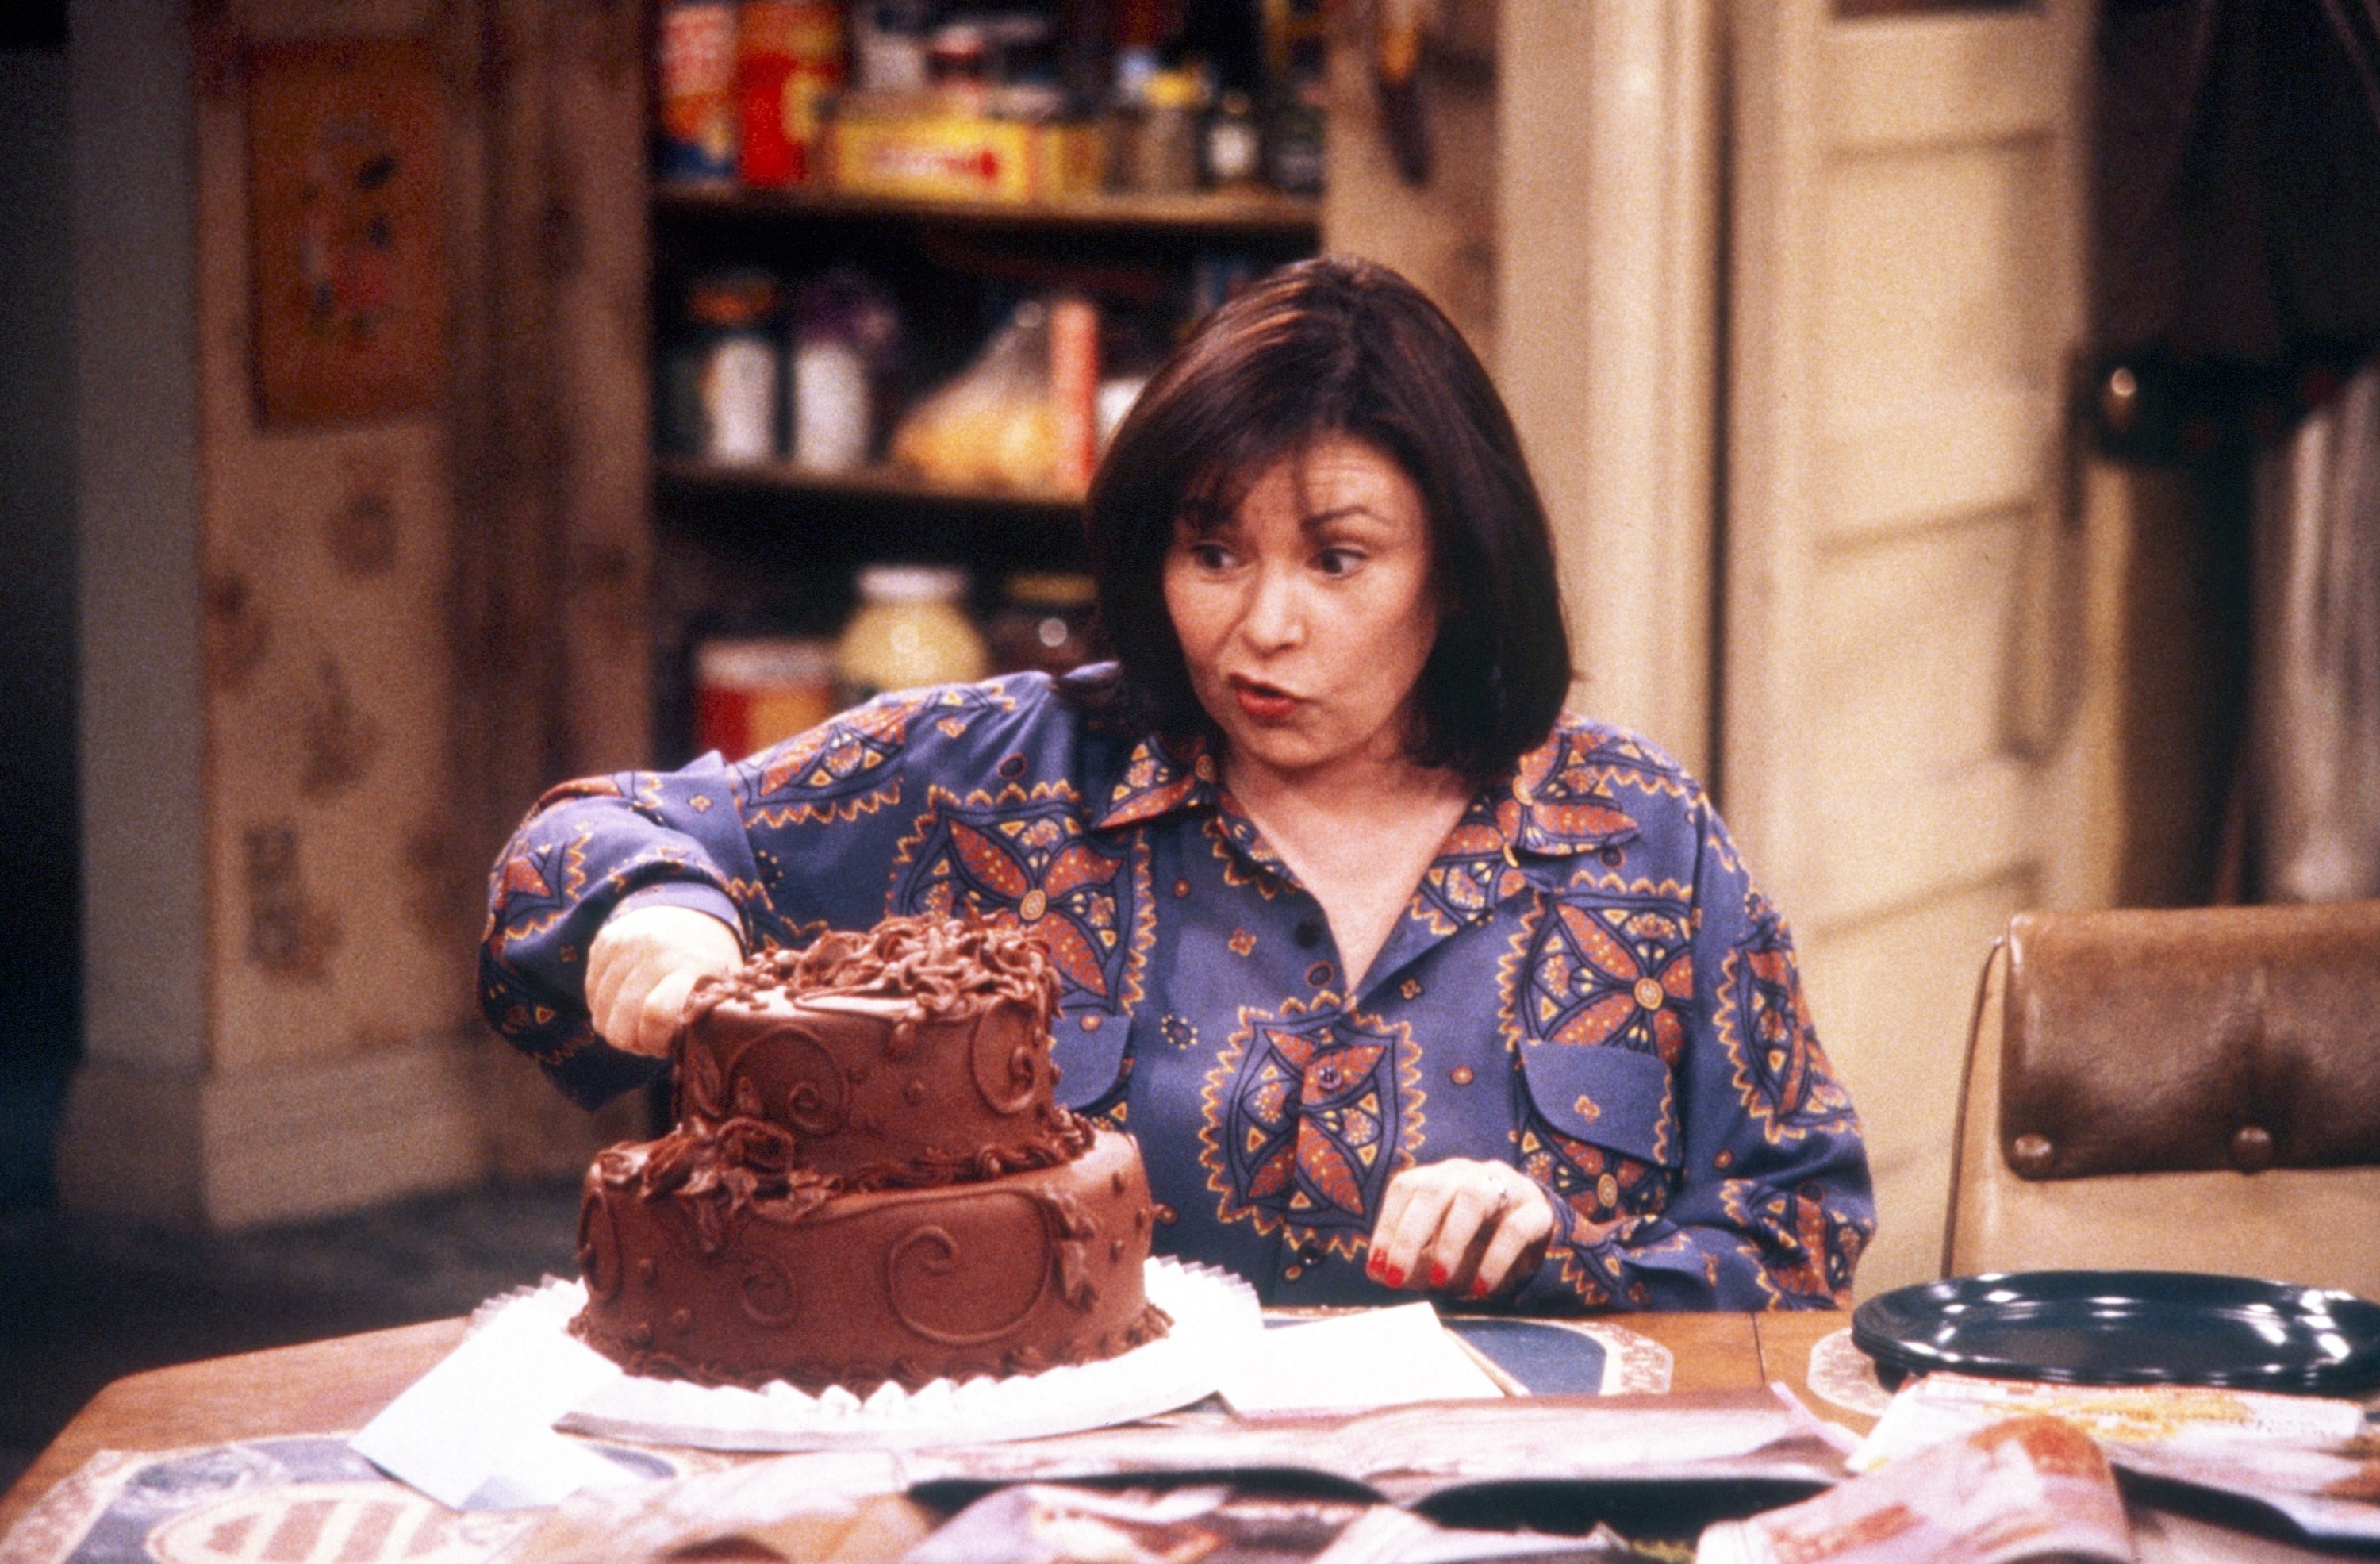 """Roseanne eating a chocolate cake in an episode of """"Roseanne"""""""